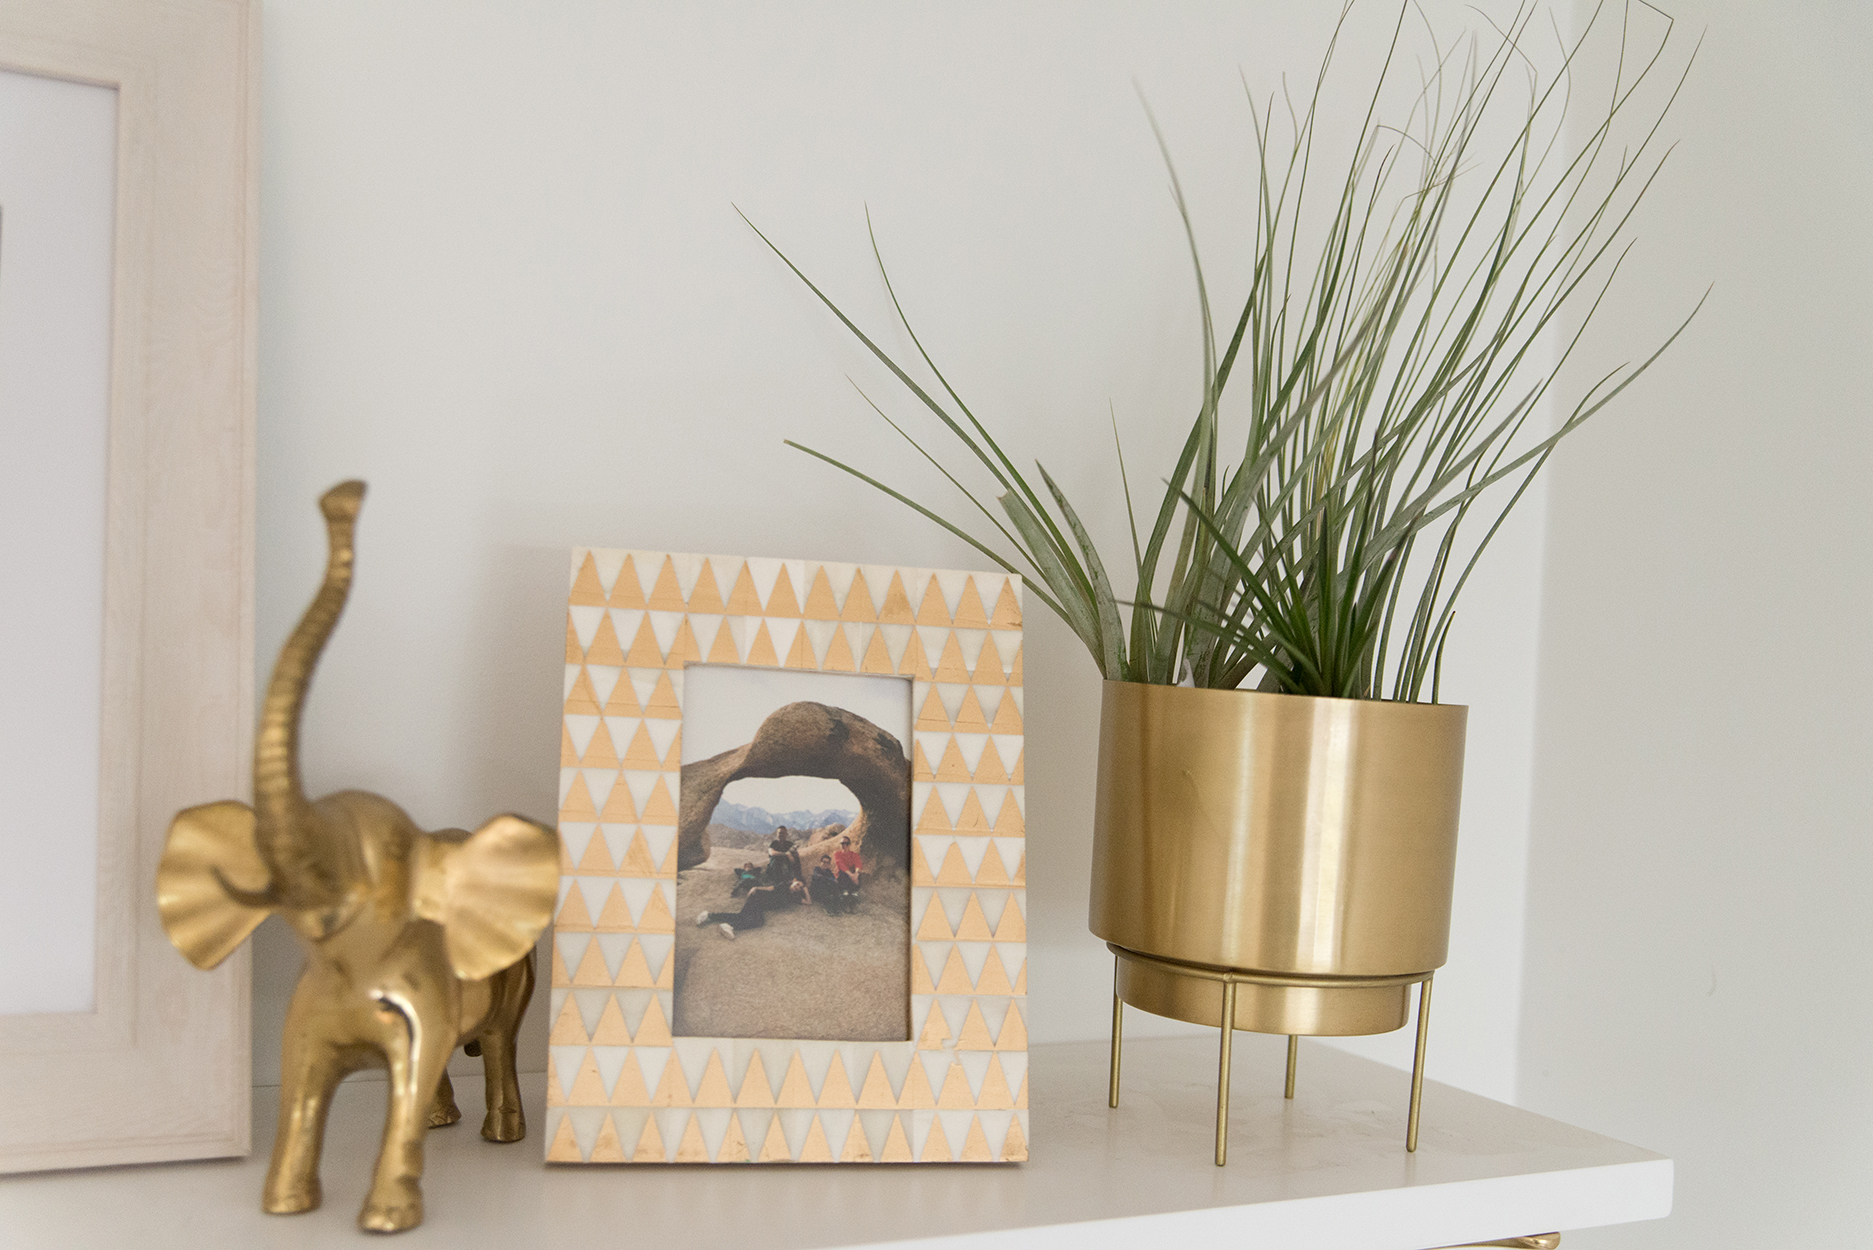 a white shelf with a plant potted in a gold pot, a dessert pic in a geometric printed frame and a gold elephant sculpture